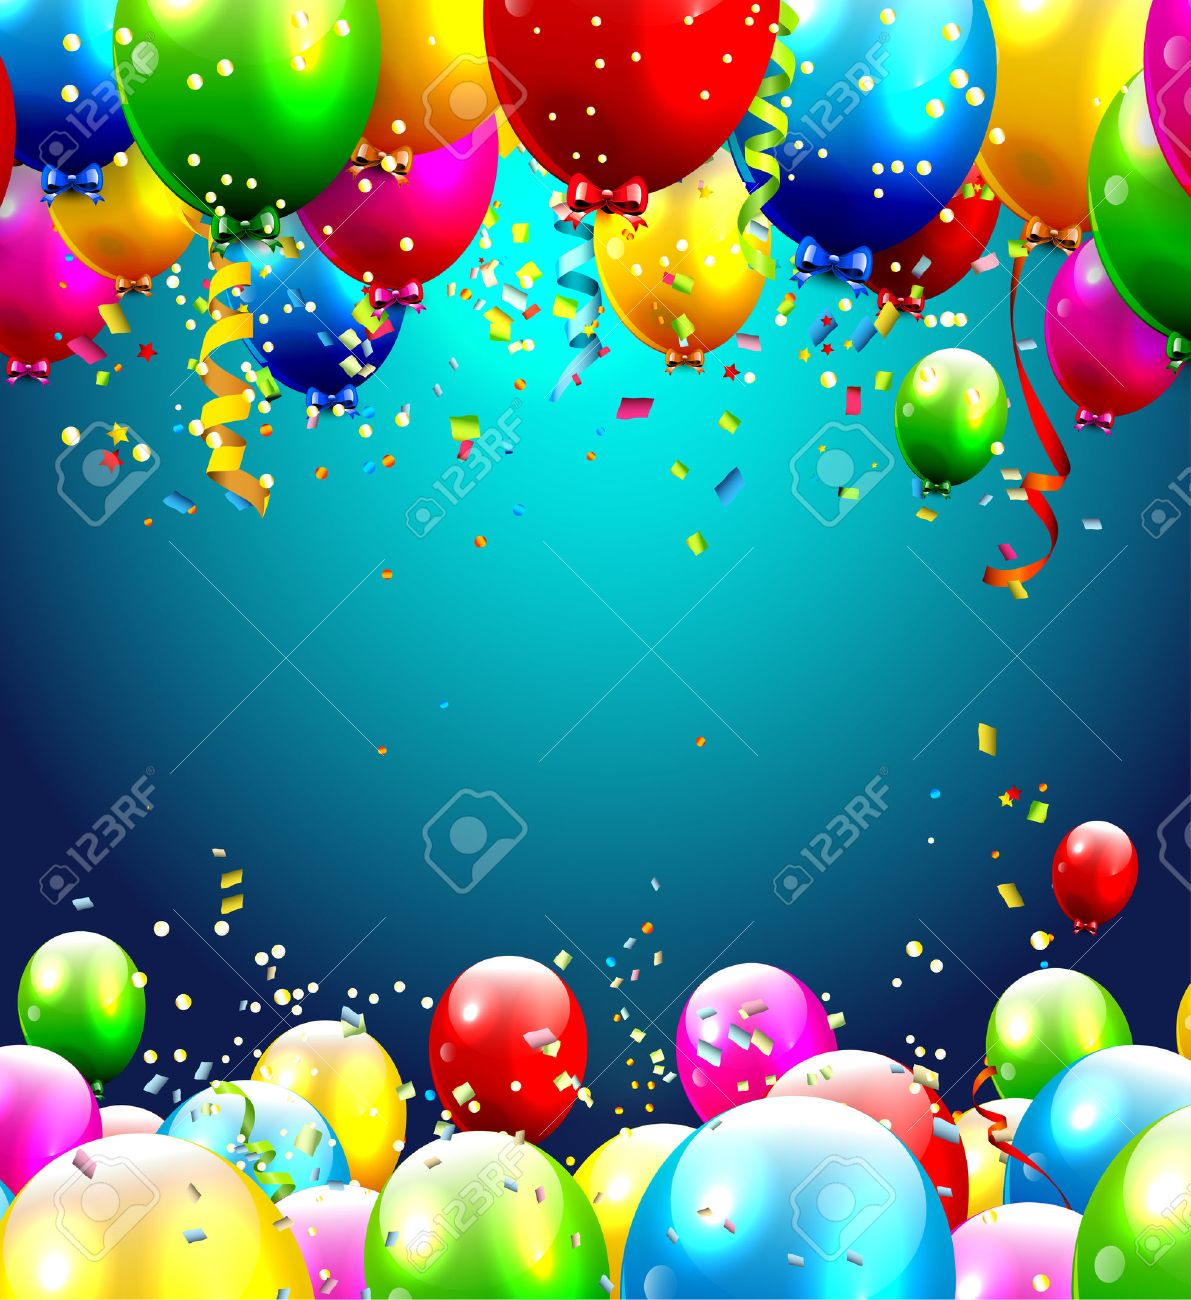 colorful birthday images ; 29385031-colorful-birthday-balloons-background-with-place-for-text